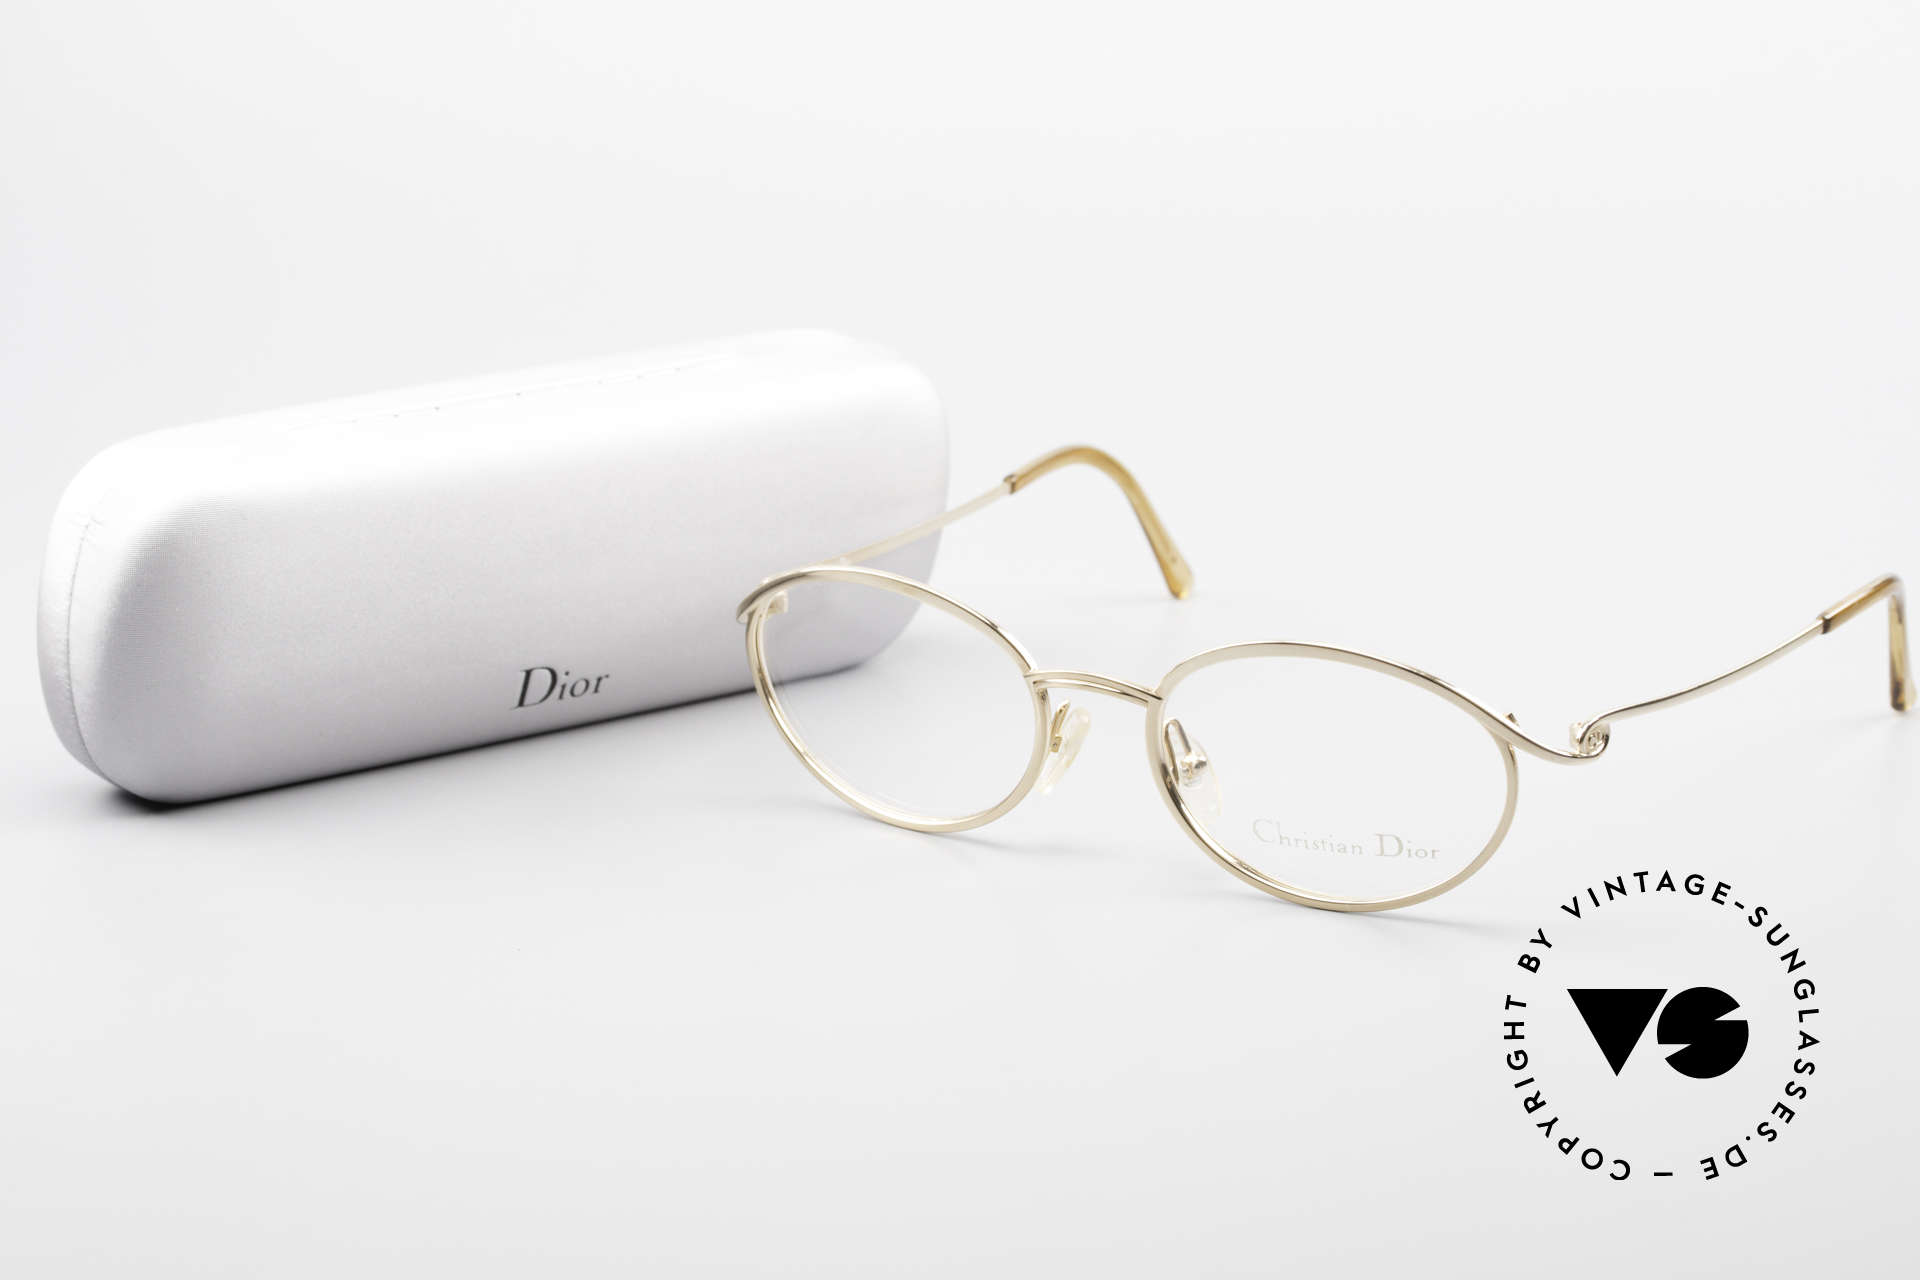 Christian Dior 2939 Ladies 90's Frame Gold Plated, demos can be replaced with lenses of any kind, Made for Women